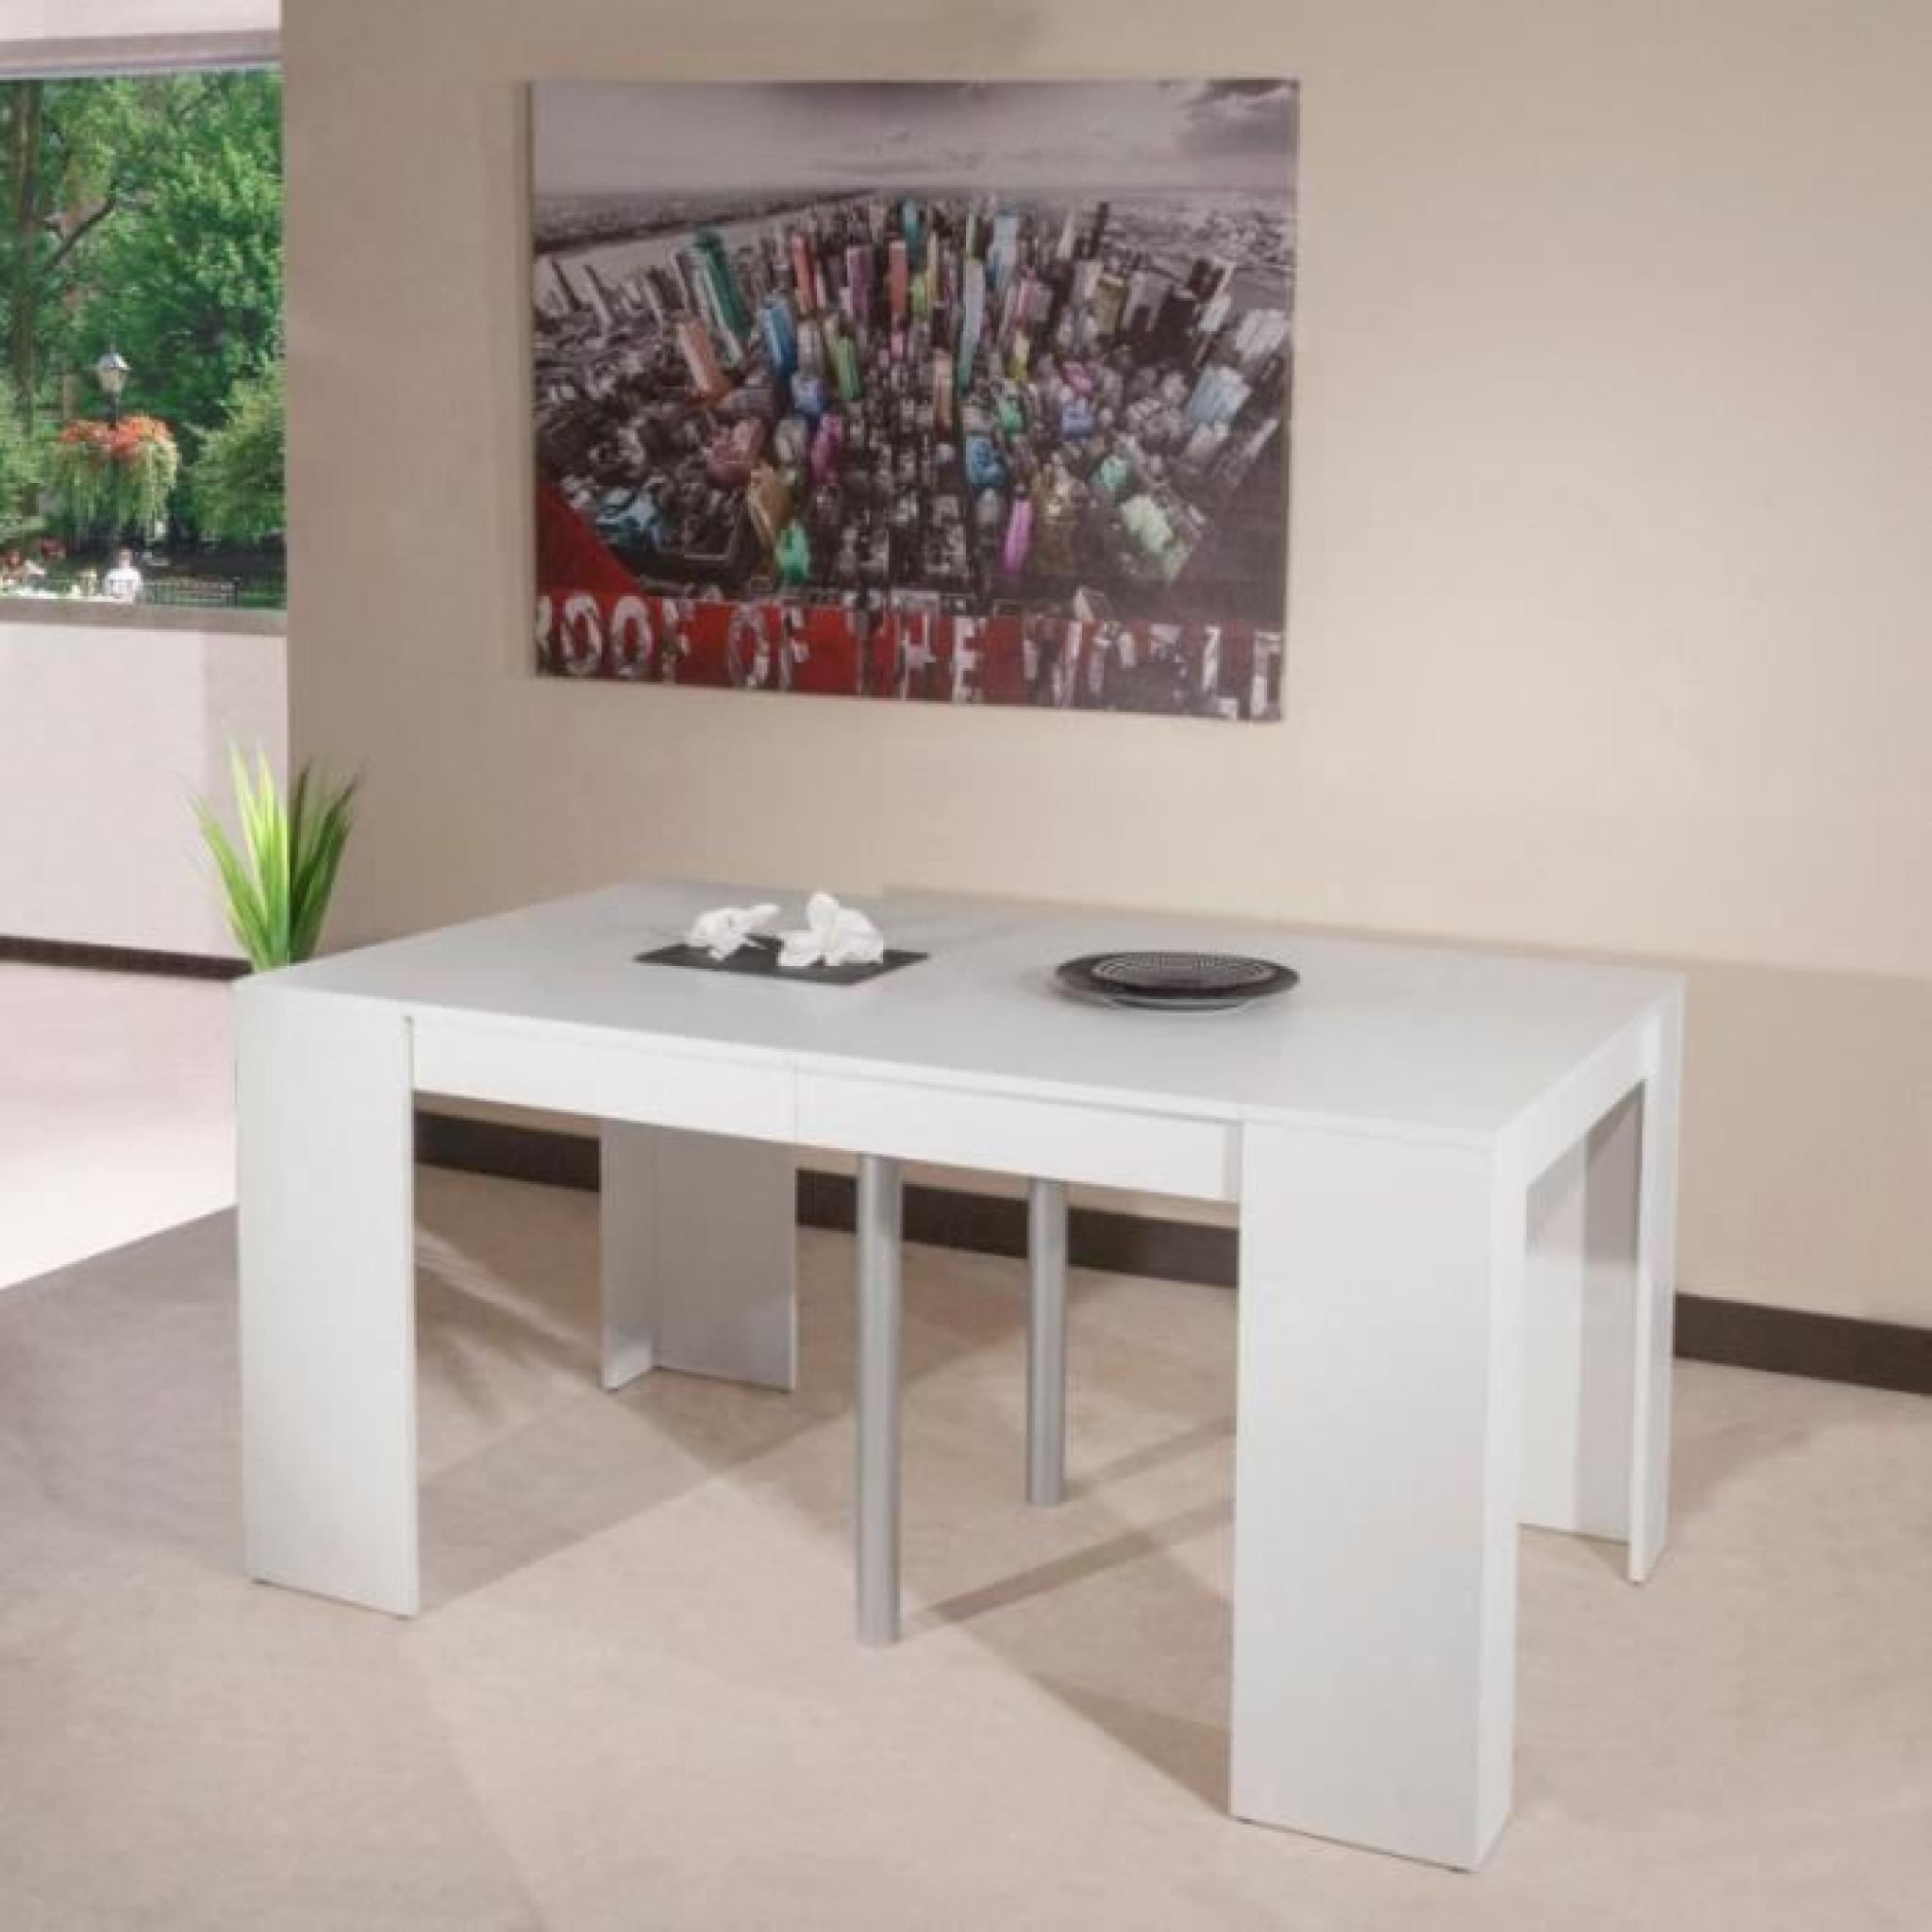 console elasto blanc mat extensible en table r achat vente ensemble salle a manger pas cher. Black Bedroom Furniture Sets. Home Design Ideas